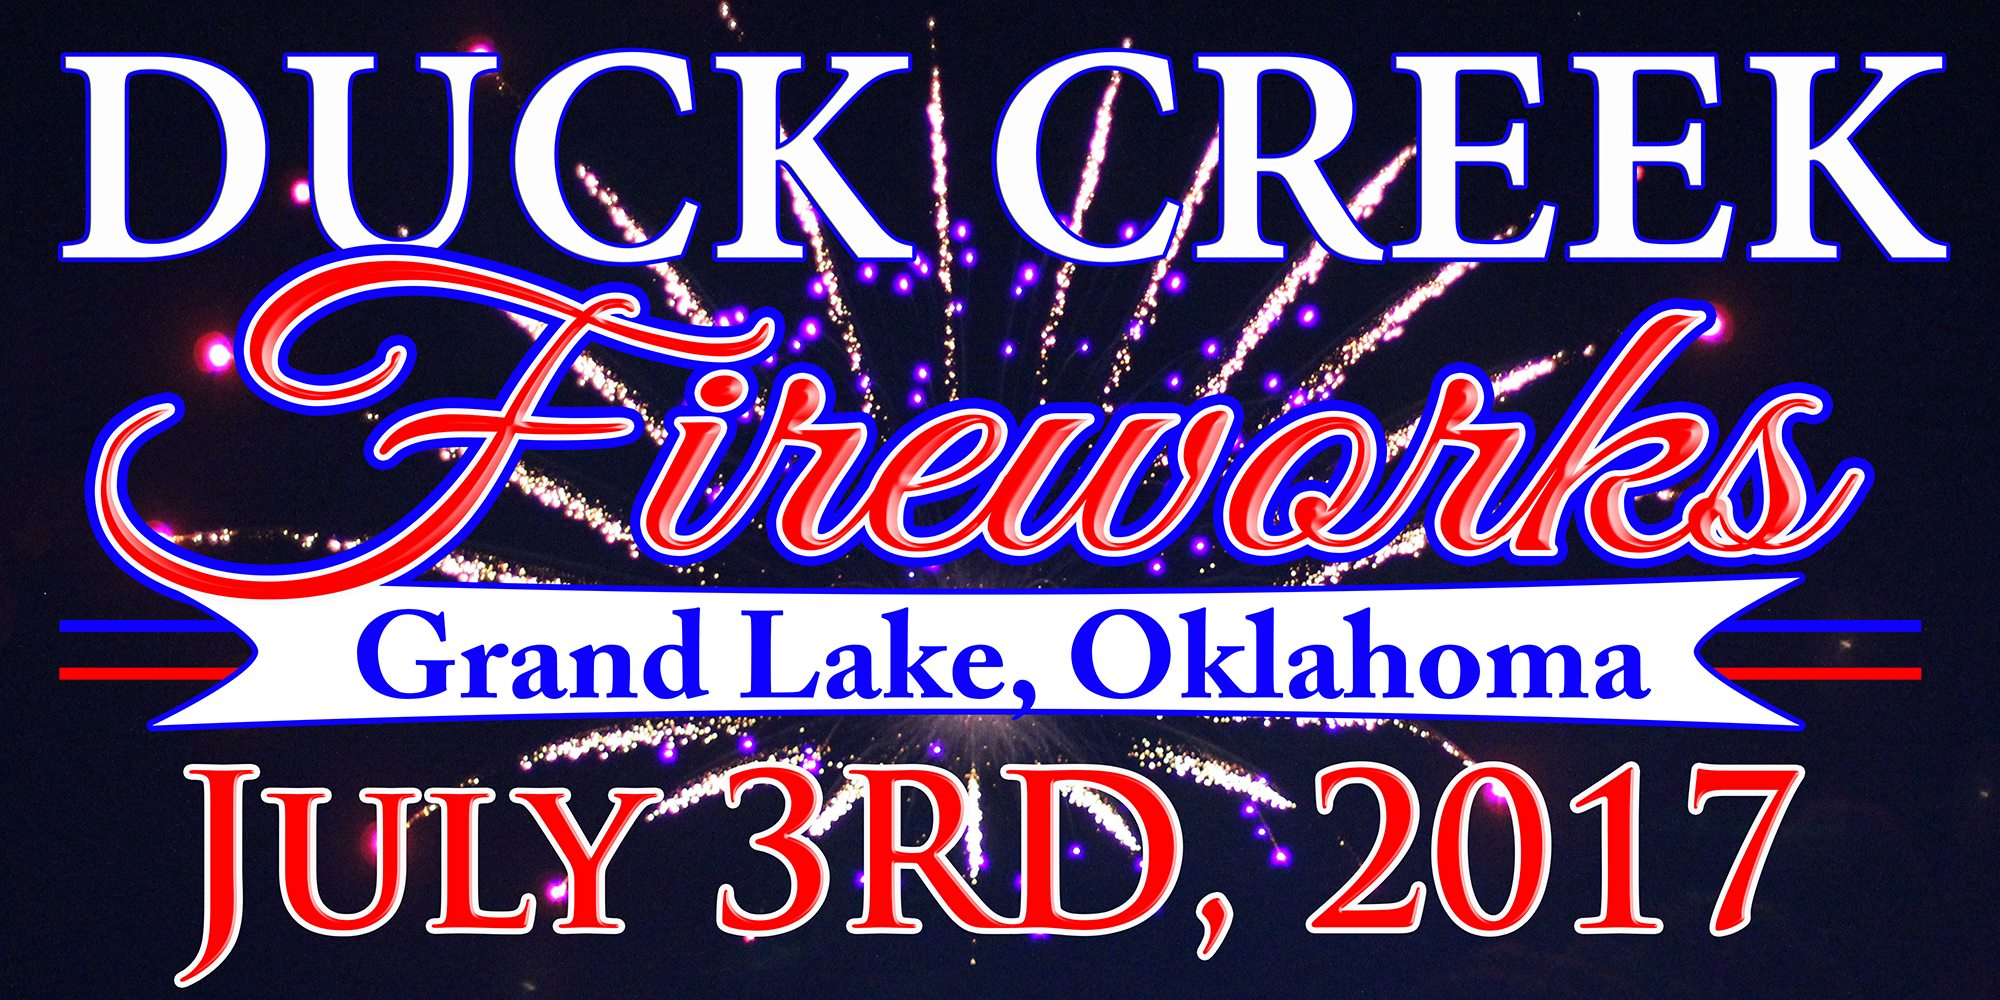 2017 Duck Creek Fireworks